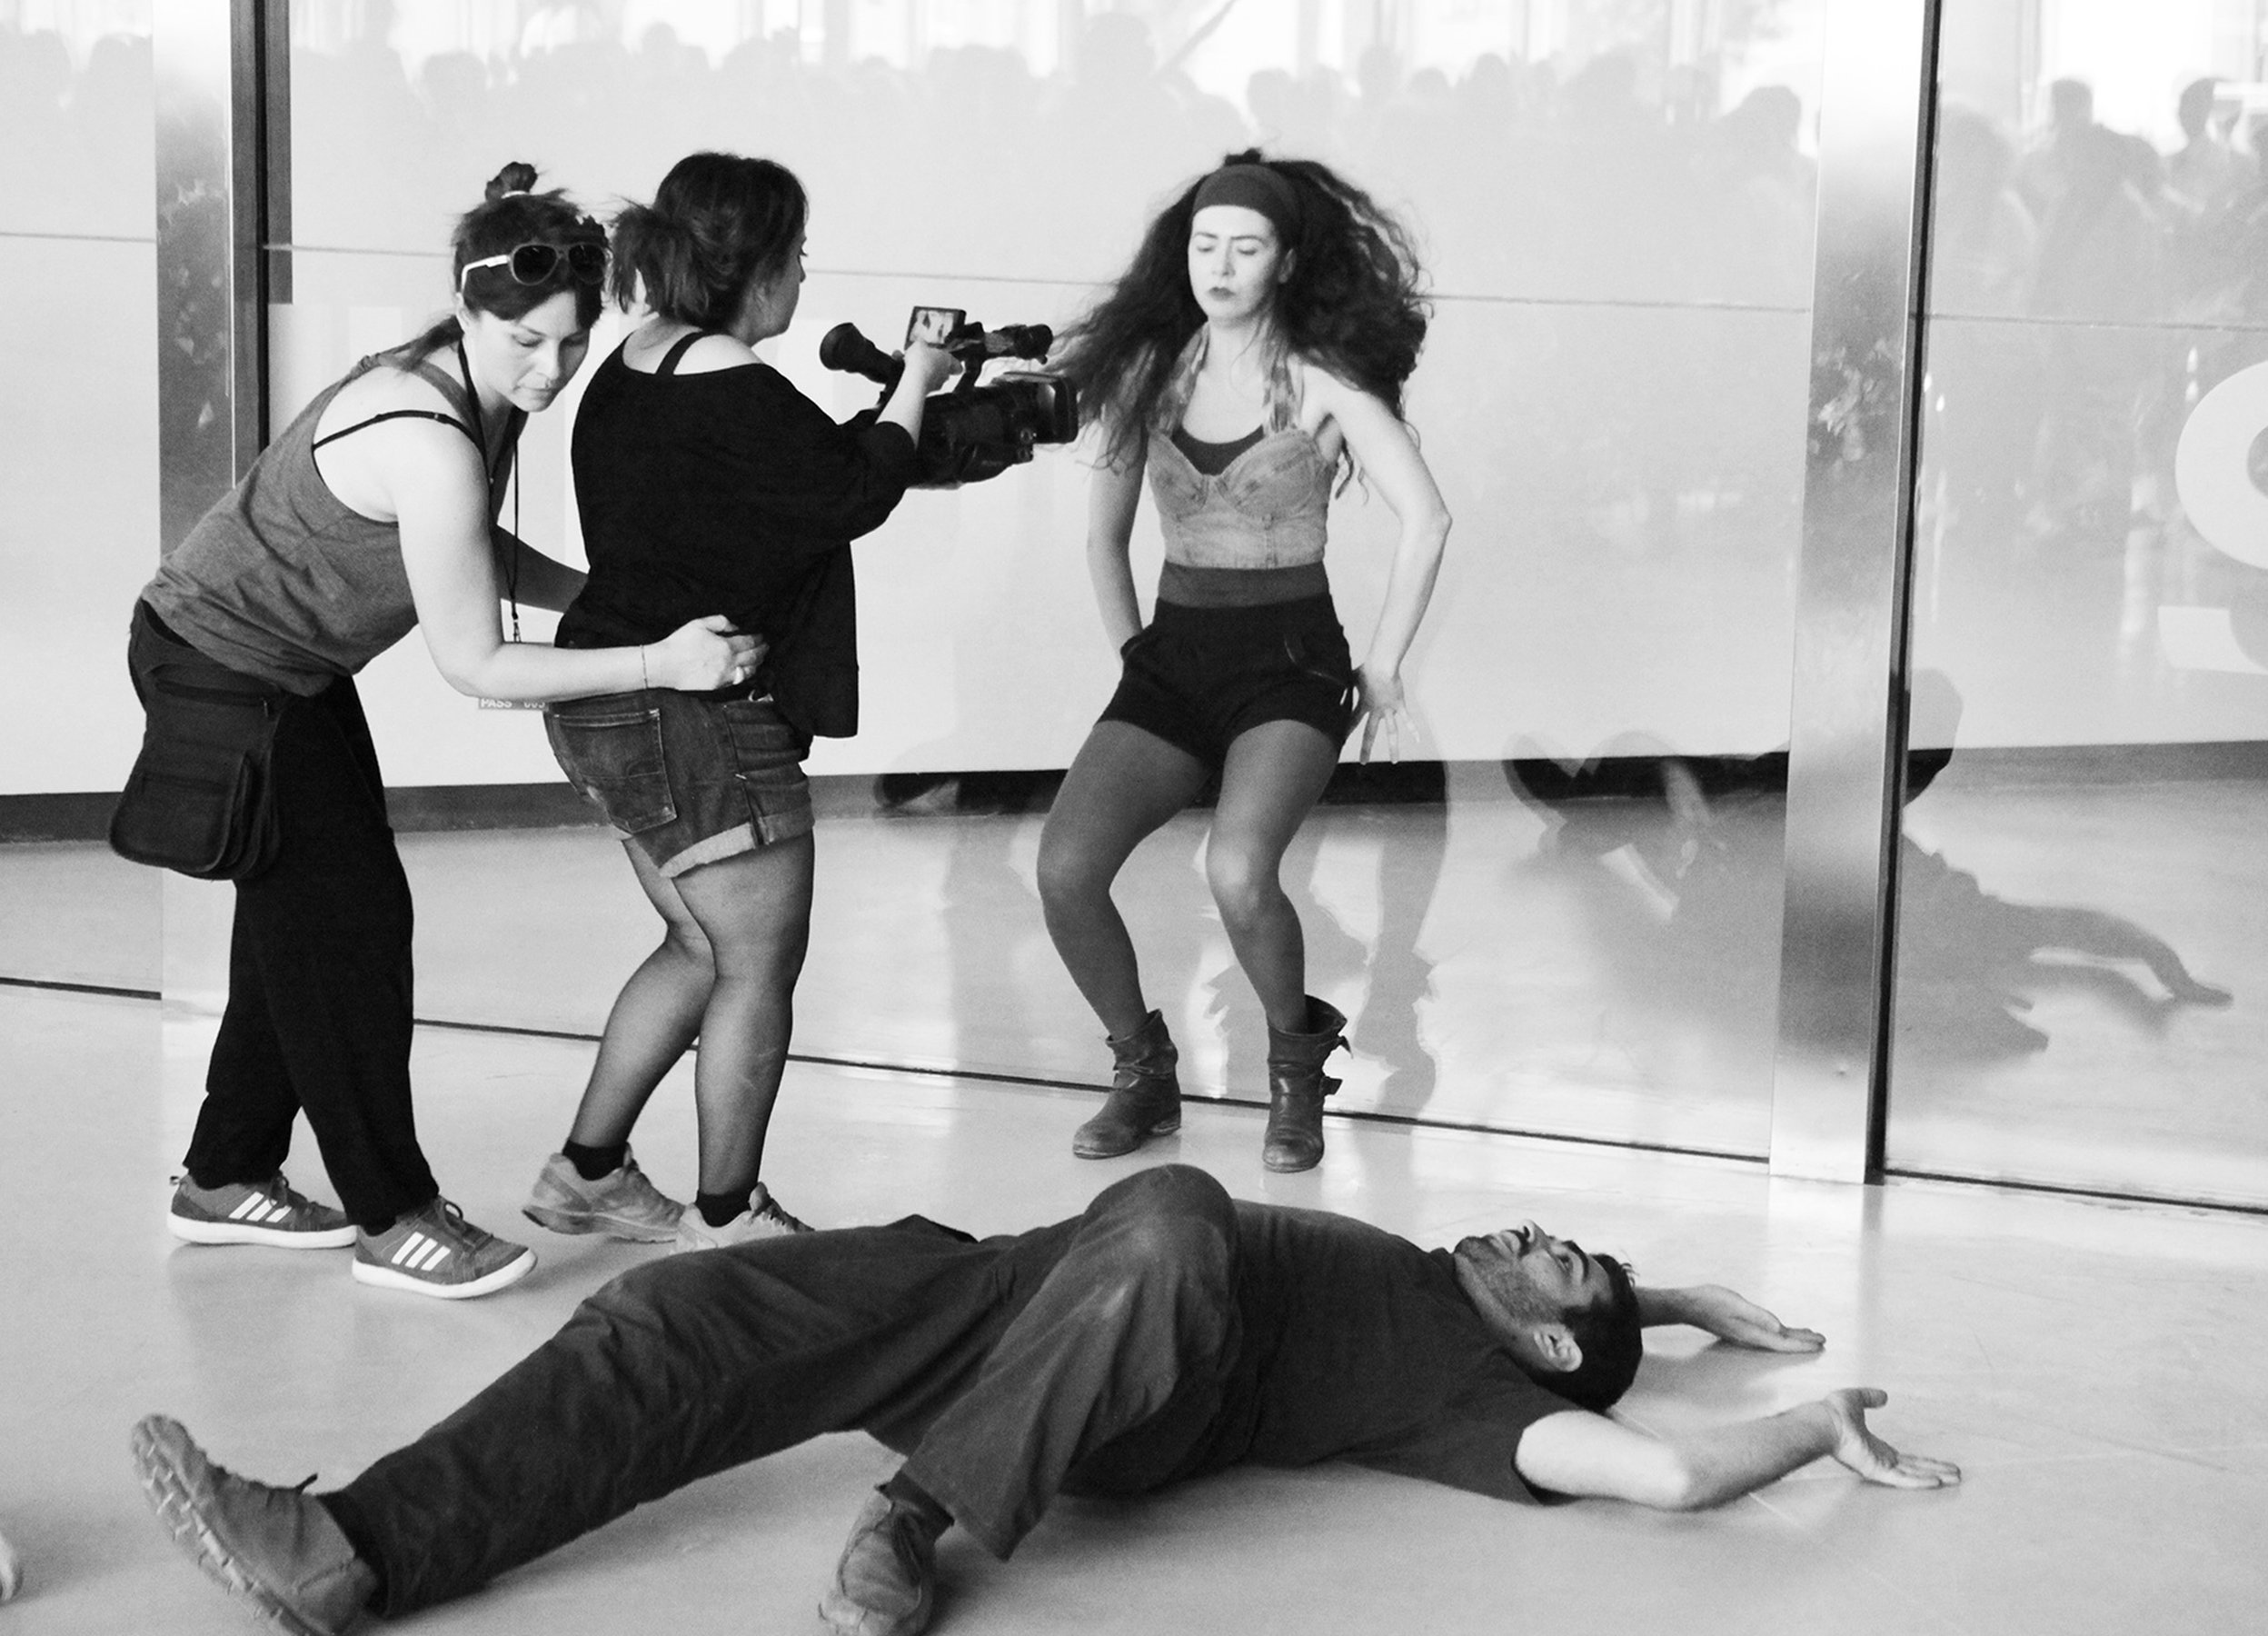 Marinella Senatore The School of Narrative Dance, Roma 2014 Final performance at MAXXI Museum, Rome Production photographs